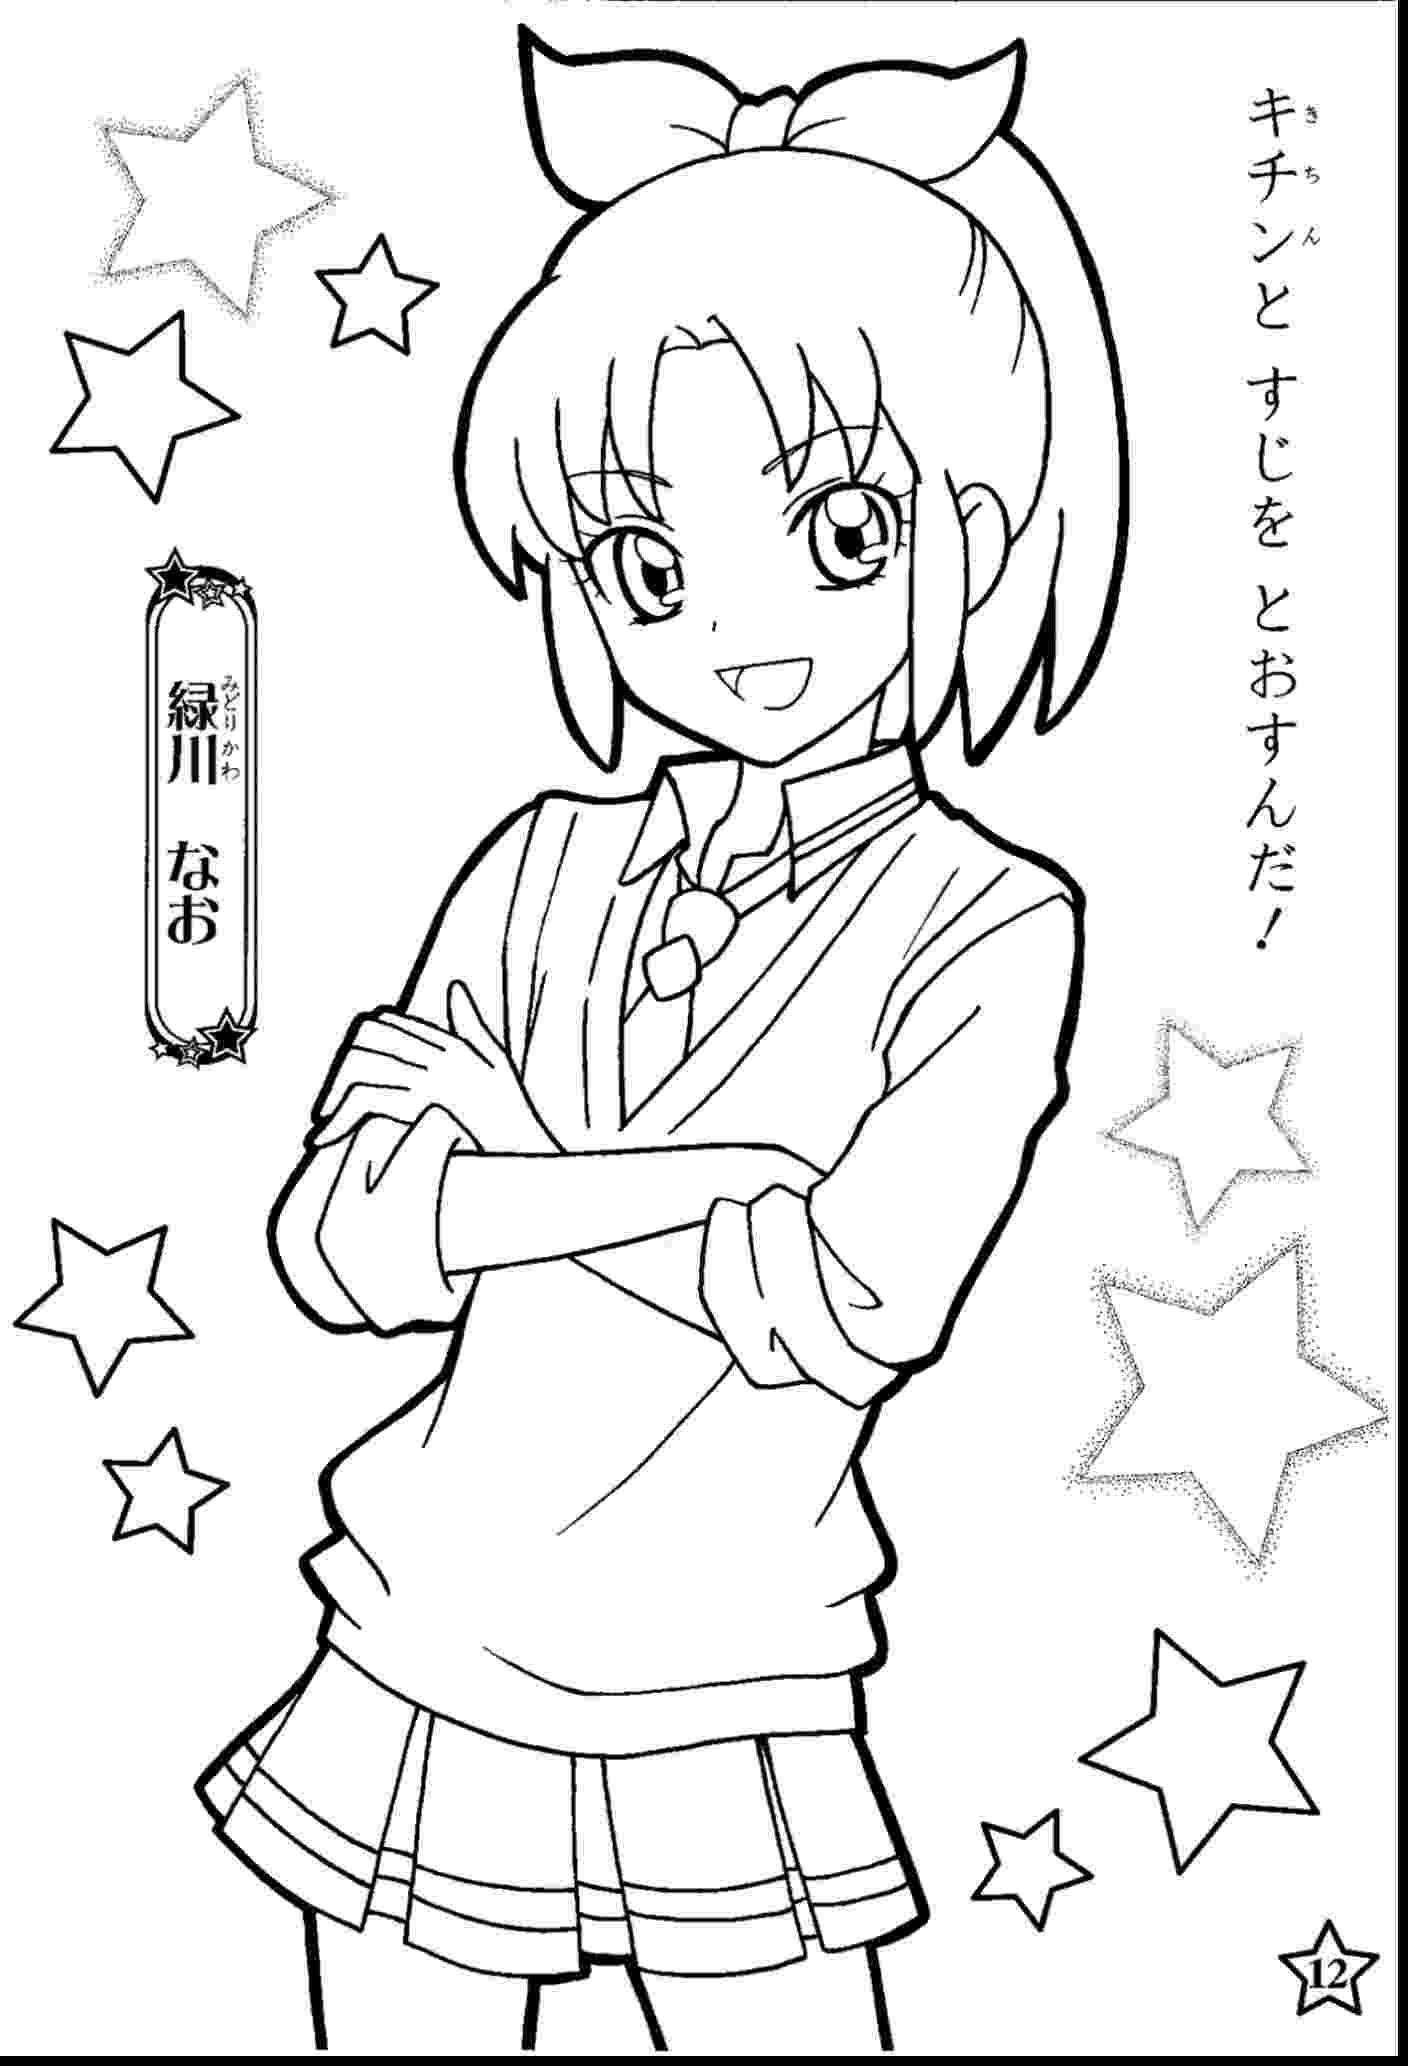 anime colouring free anime girl coloring page free printable coloring anime colouring